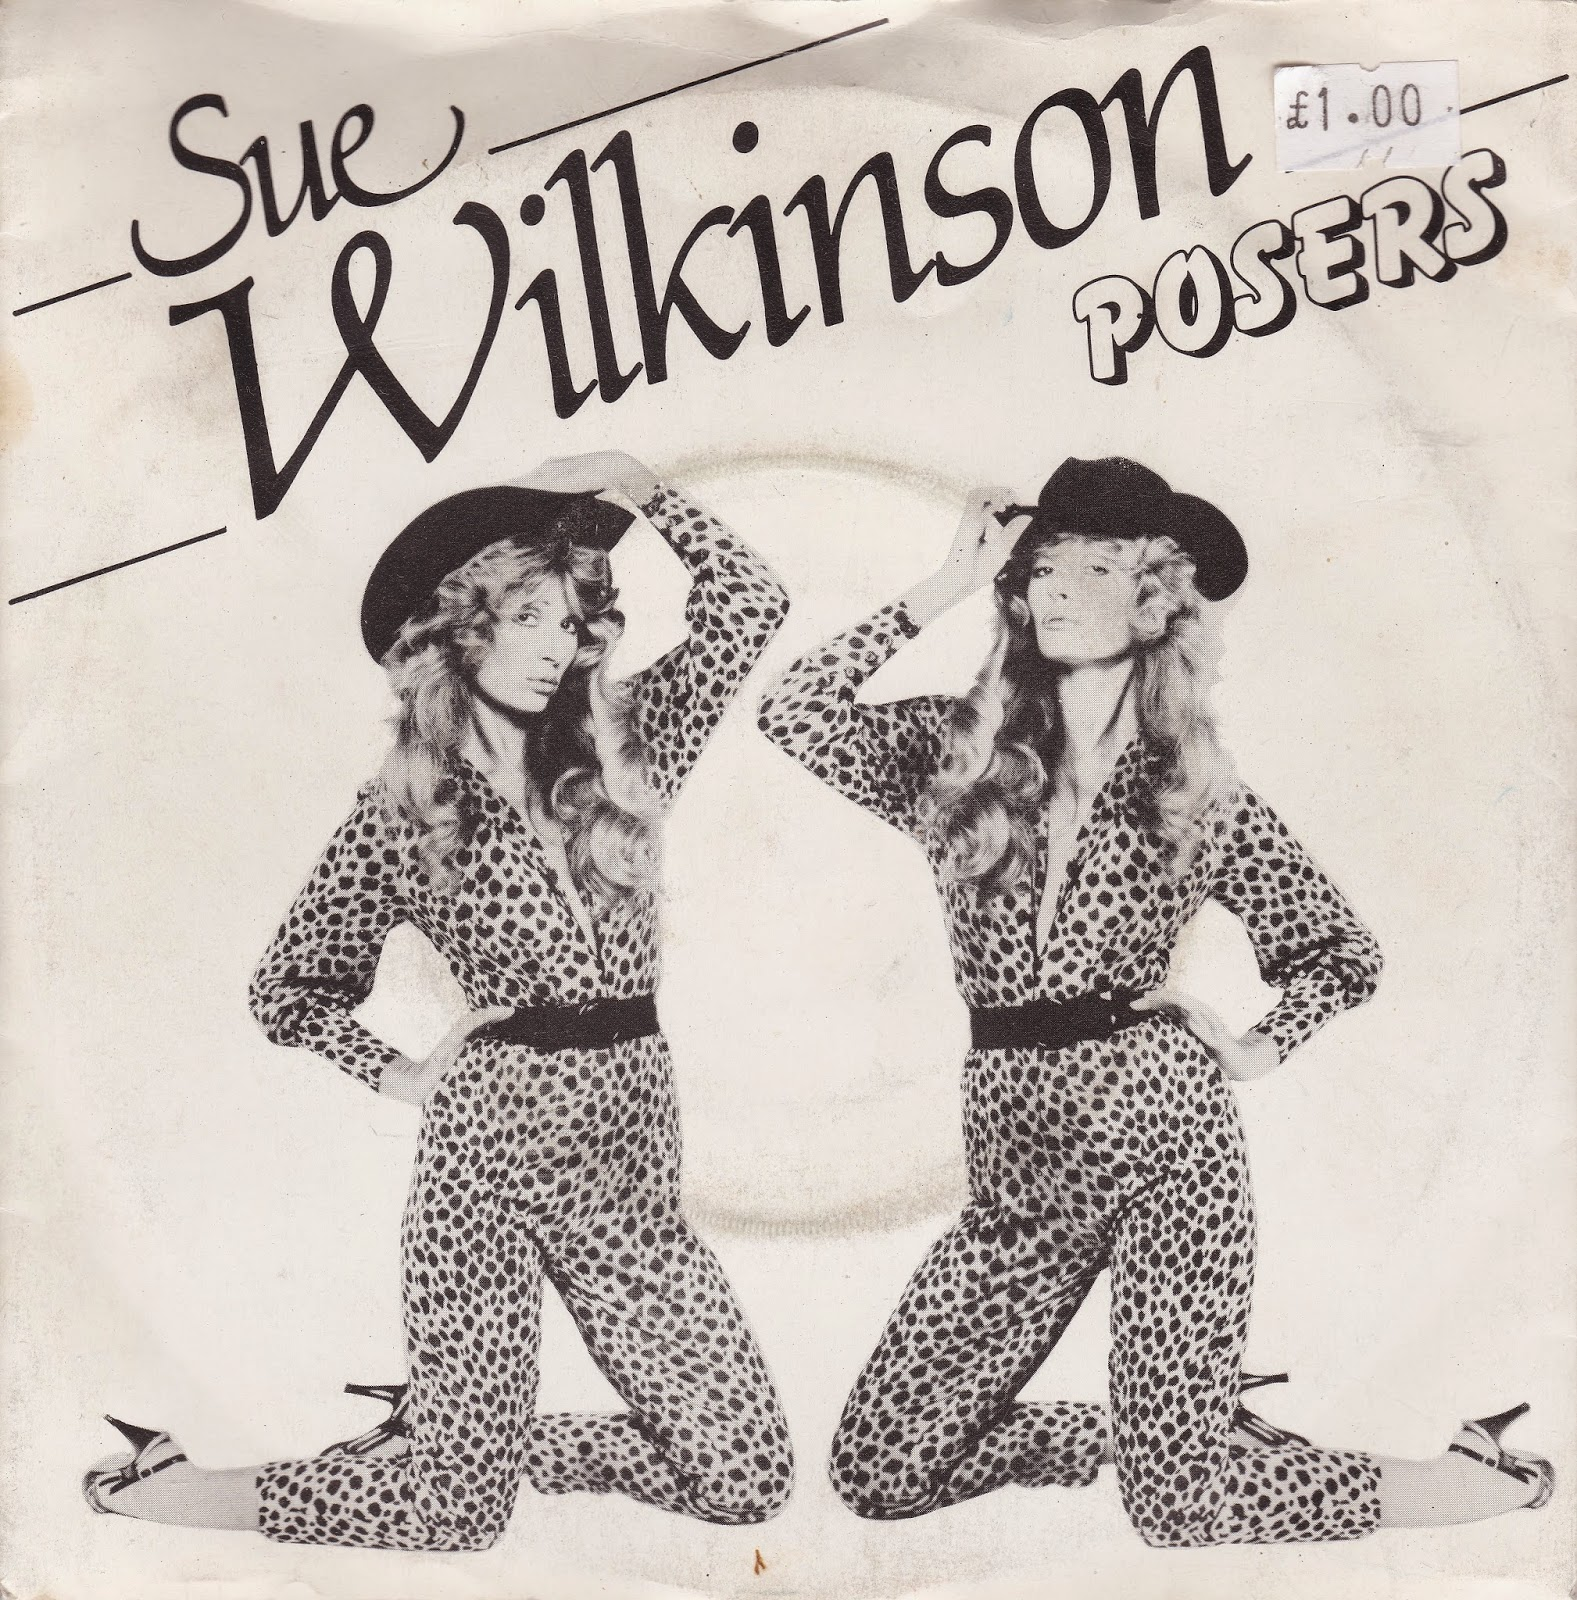 Sue wilkinson hustler